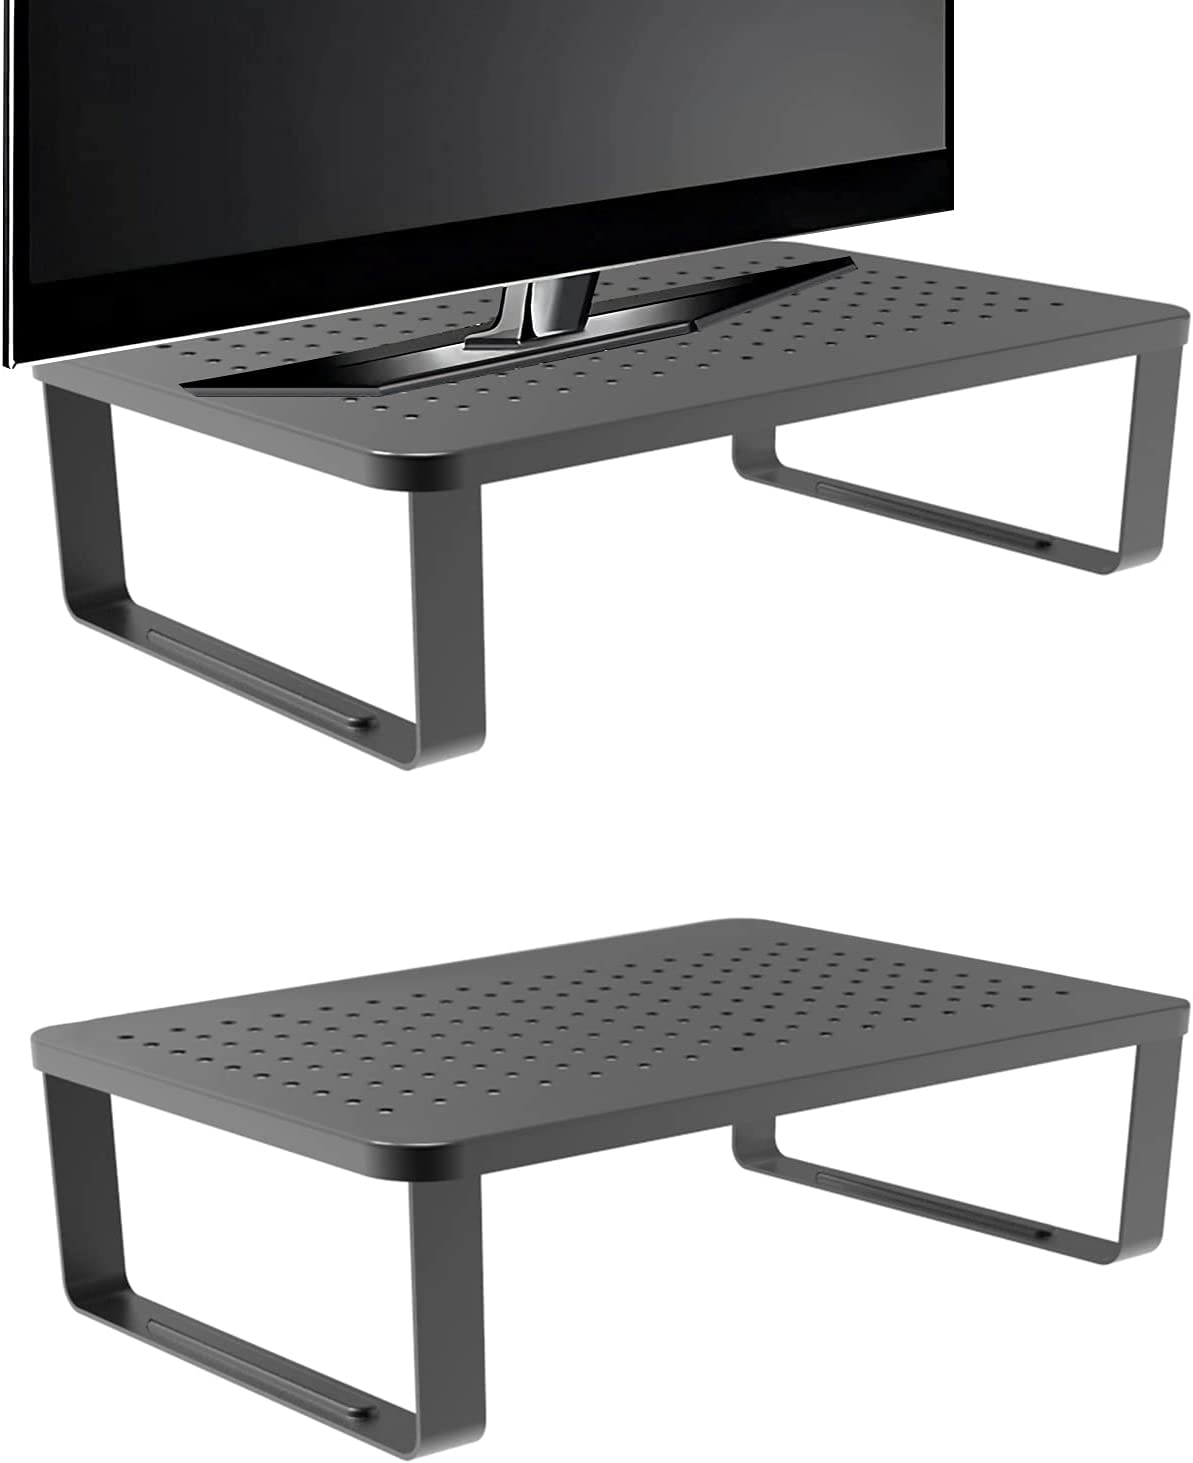 2-Pack Dual Monitor Stand with Ventilated Metal Top & Non-Skid Legs - Ideal for Laptop, Computer, iMac, PC, Printer & Accessories Riser. Sturdy Ergonomic Organizer for Home Office & Business